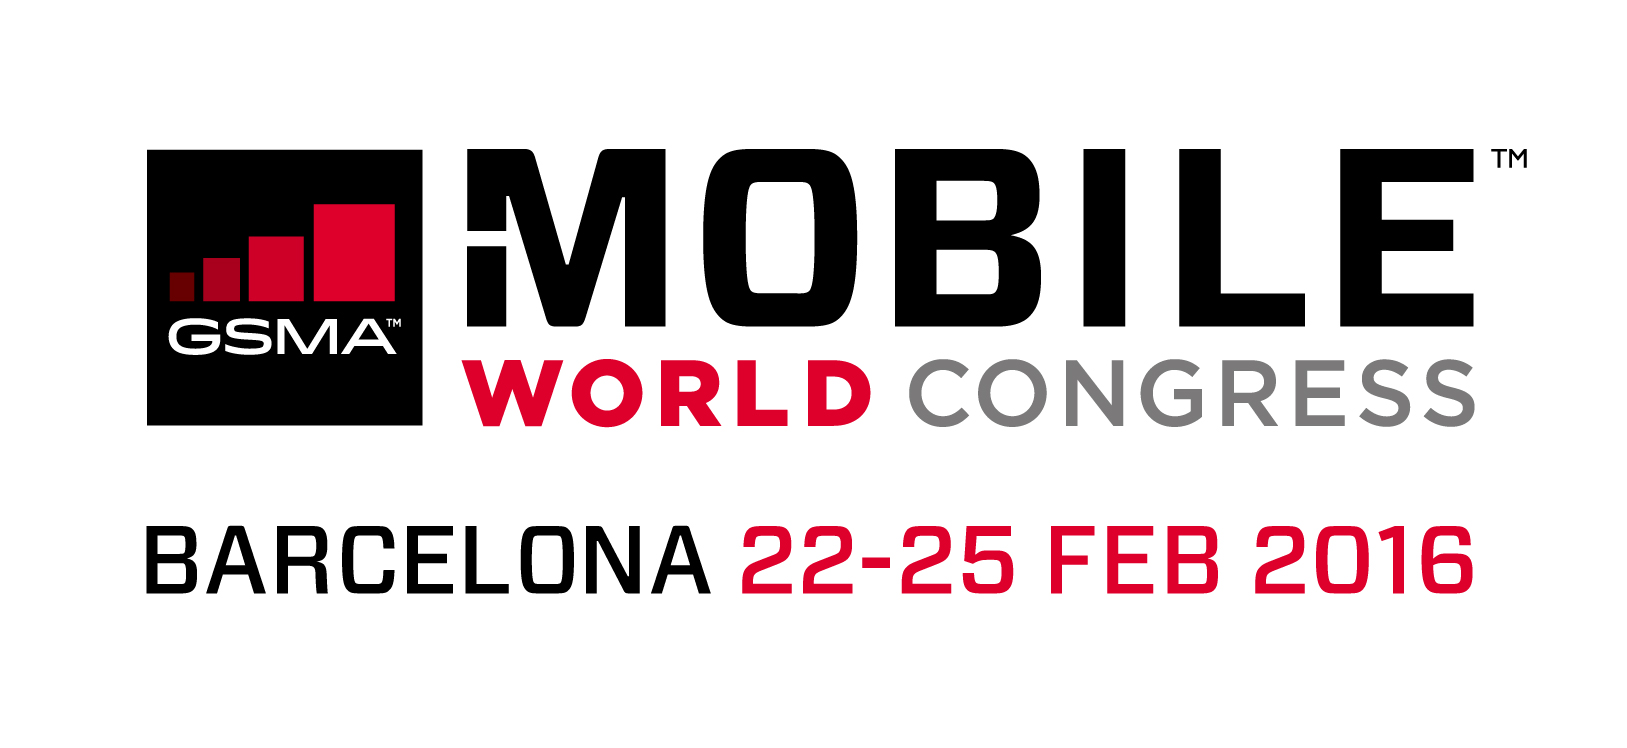 Ford to premier latest advances in mobility and connectivity at Mobile World Congress